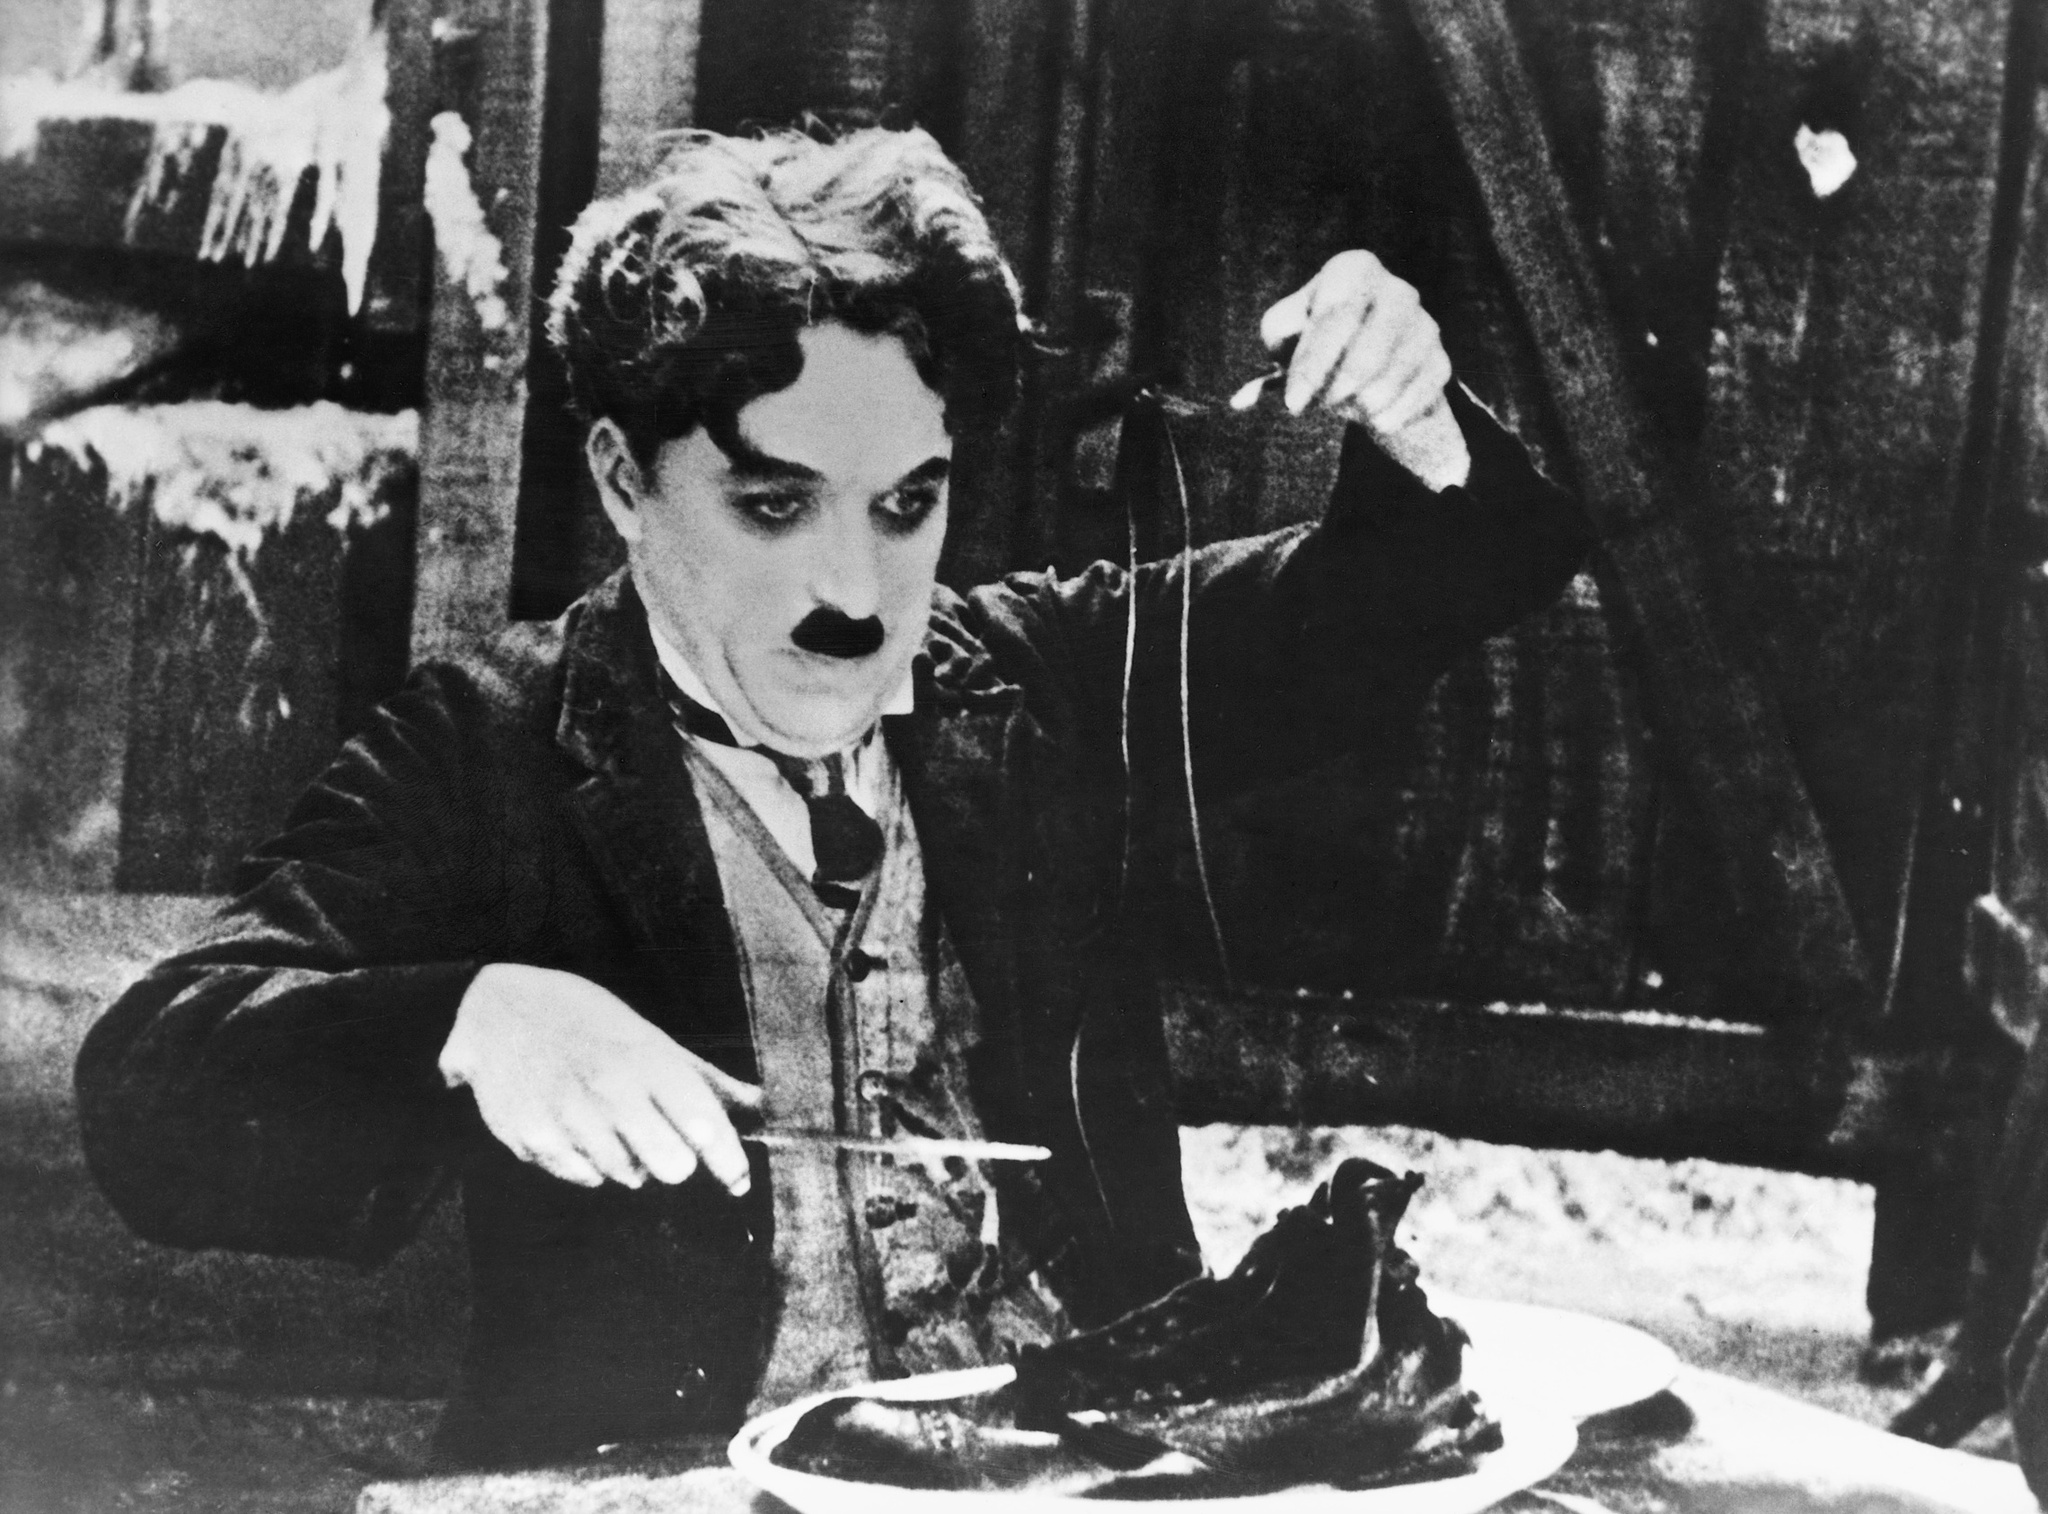 Charles Chaplin in The Gold Rush (1925)